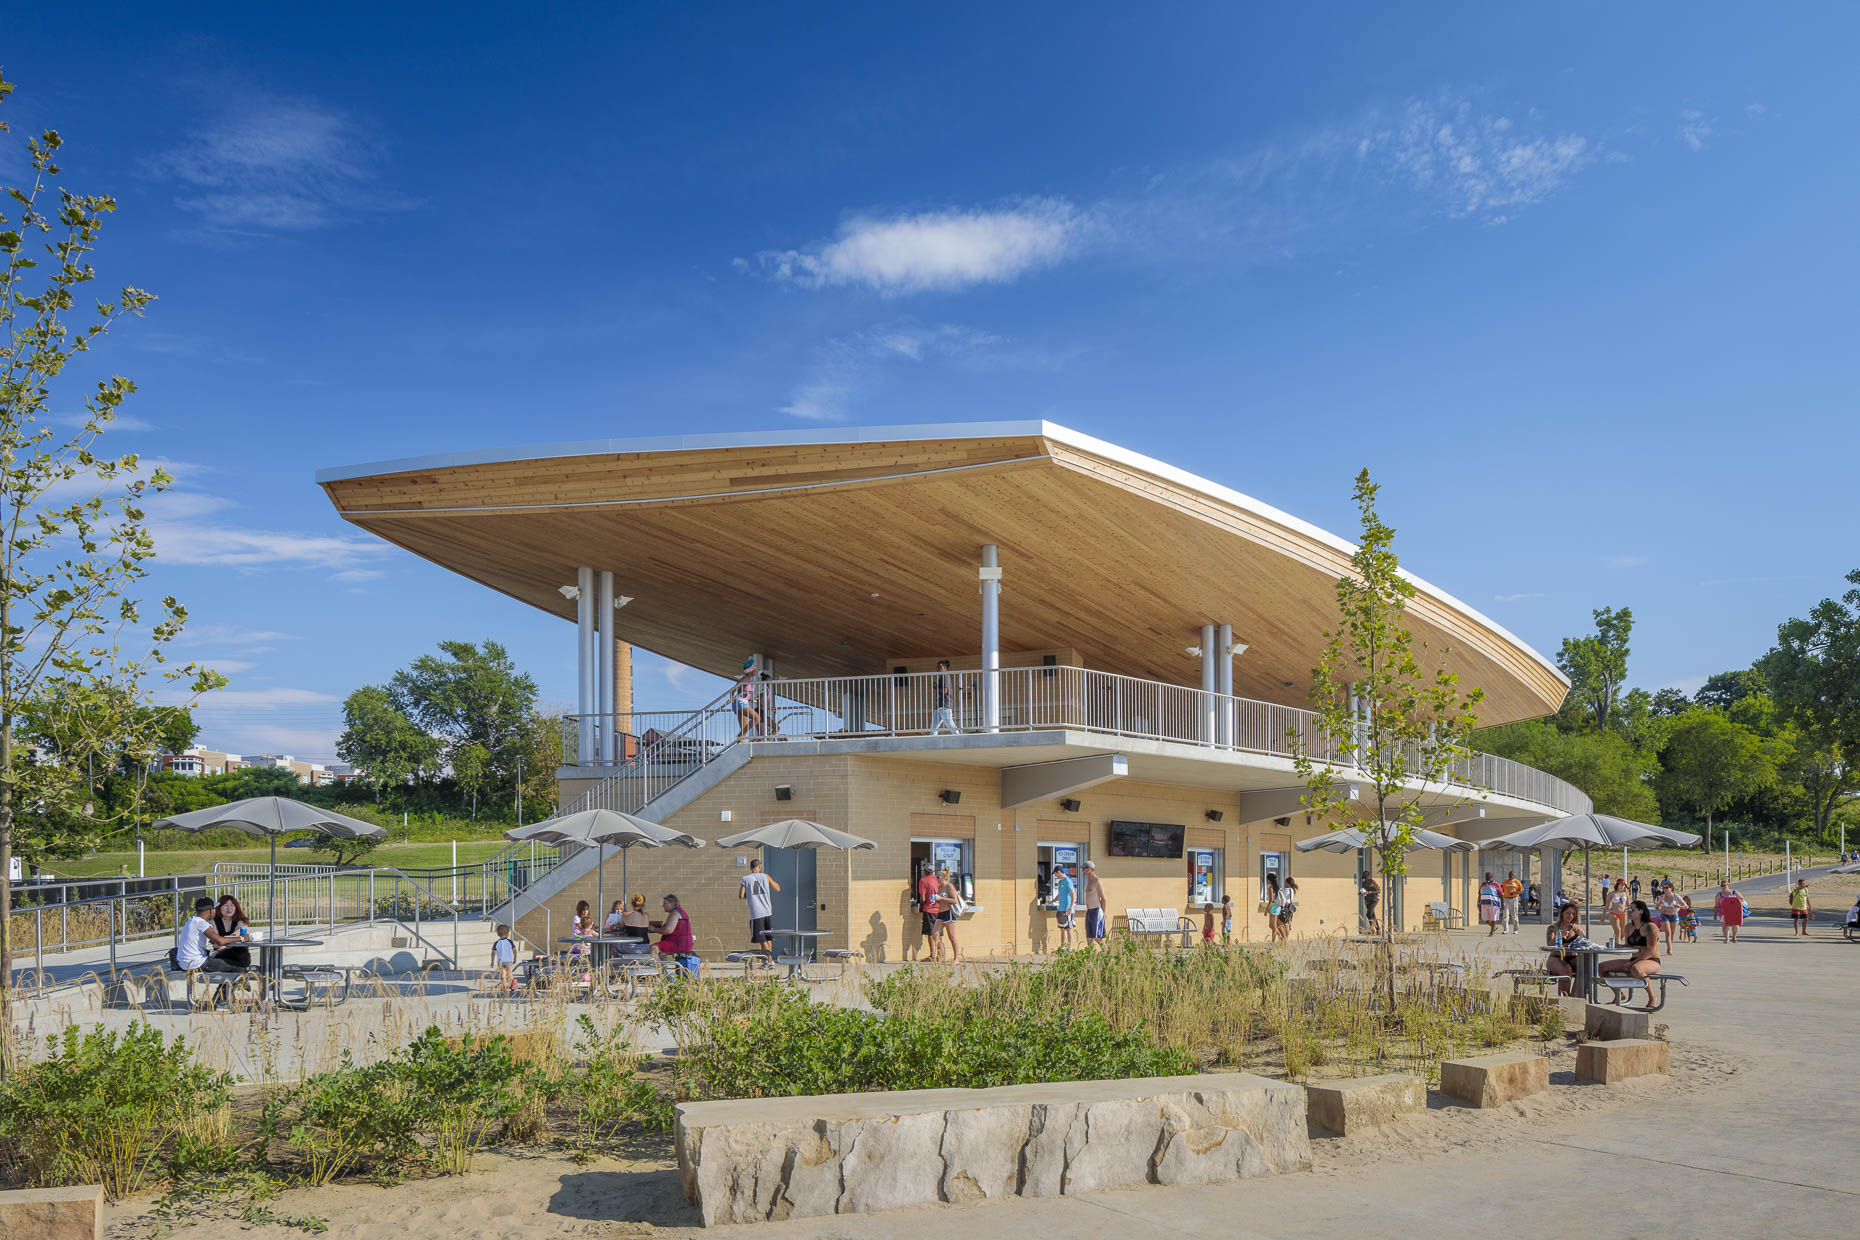 Edgewater Park Beach House by Bialosky Cleveland photographed by Brad Feinknopf based in Columbus, Ohio